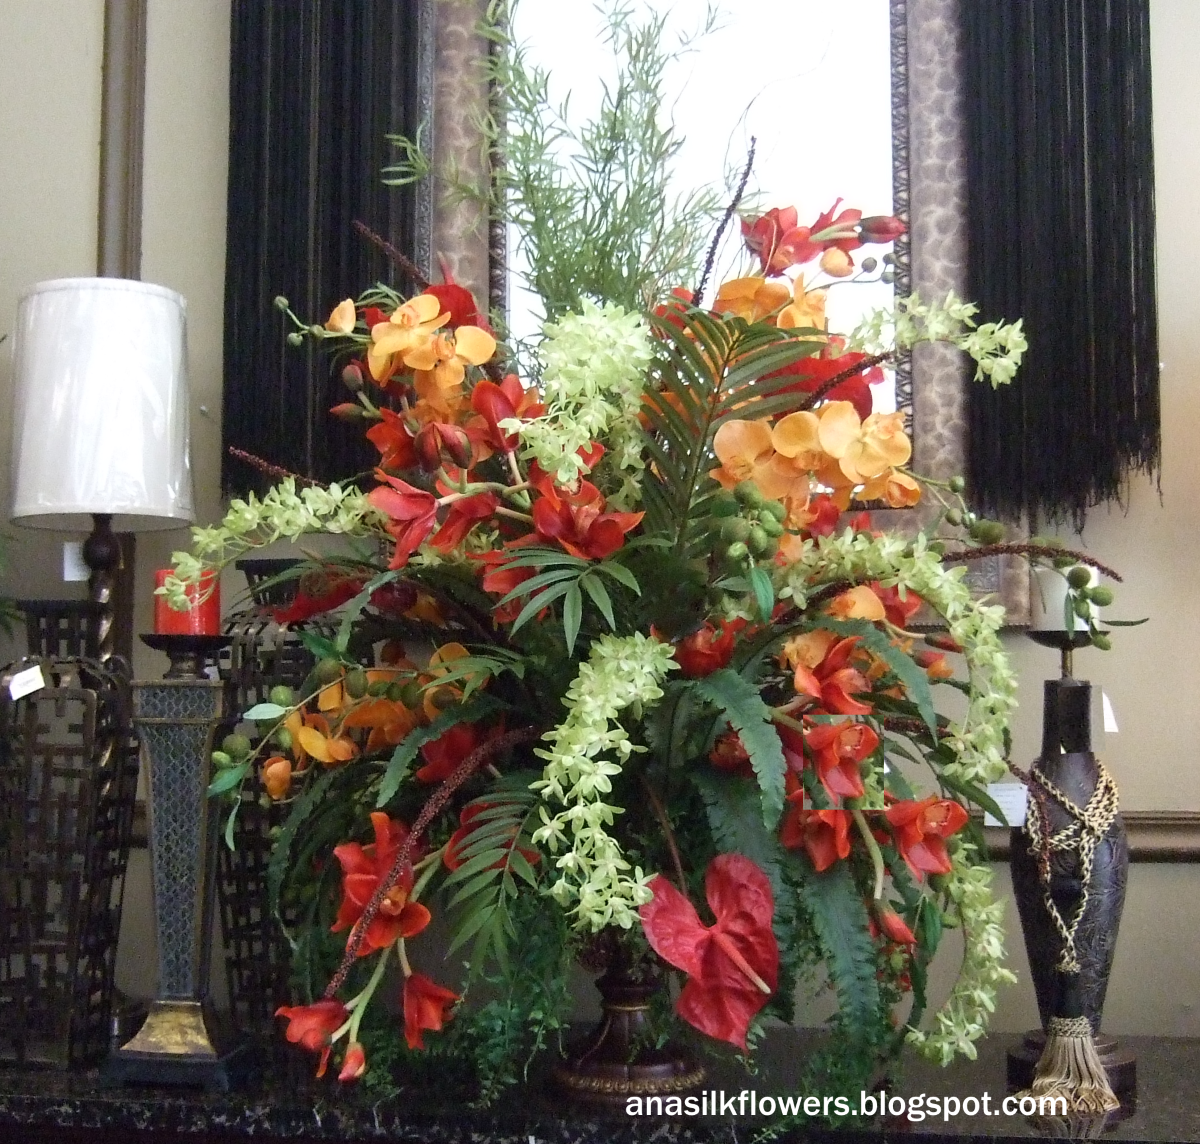 Elegant silk flower arrangements why artificial silk flowers ana silk flowers ideas and inspiration beautiful and luxury tropical silk flowers arrangements mightylinksfo Gallery